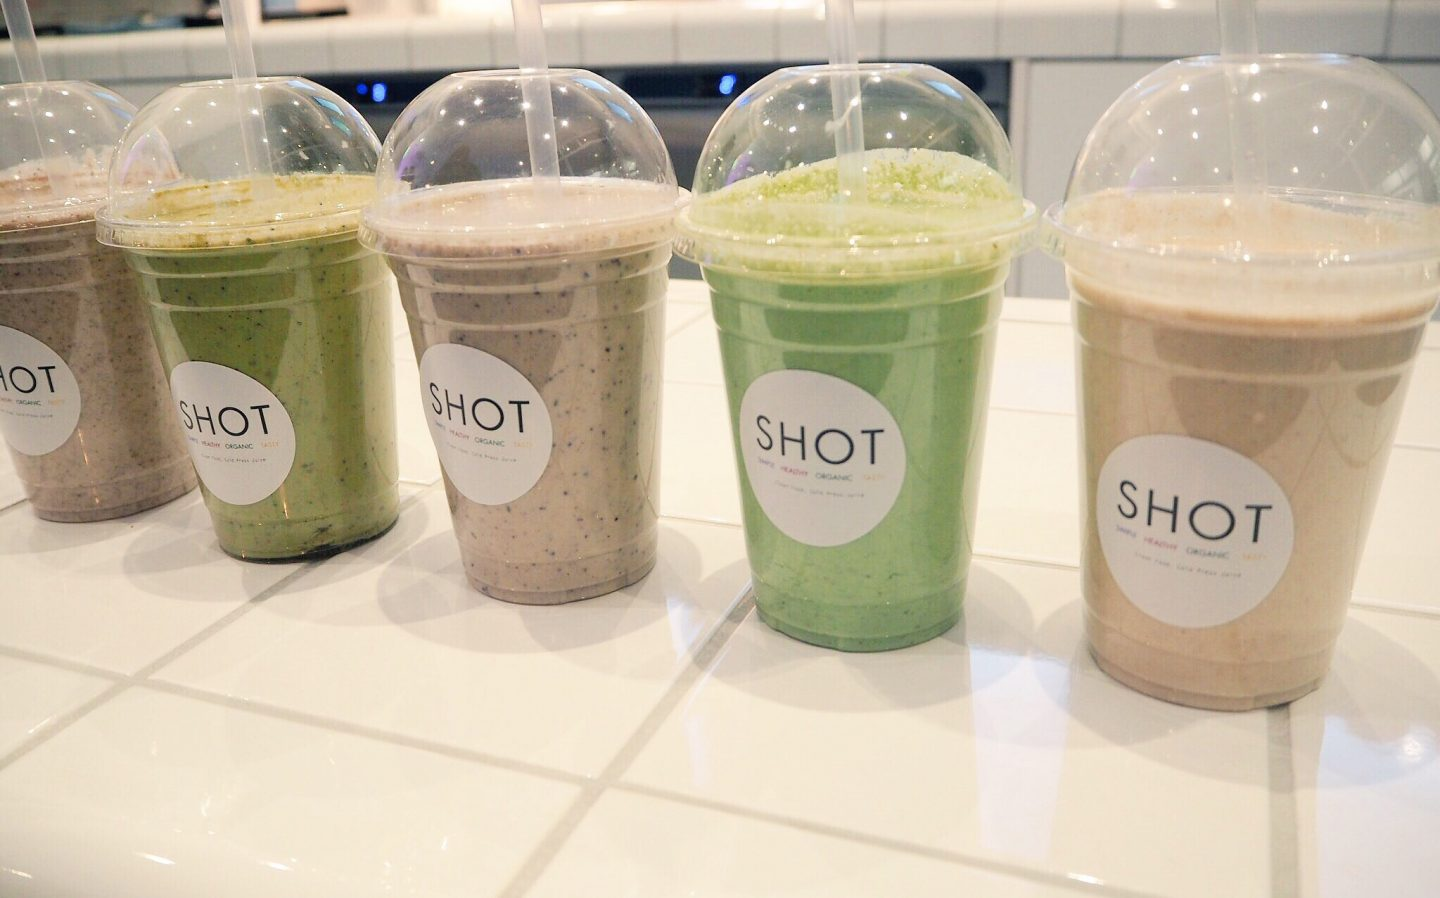 SHOT launch – clean eatery in London